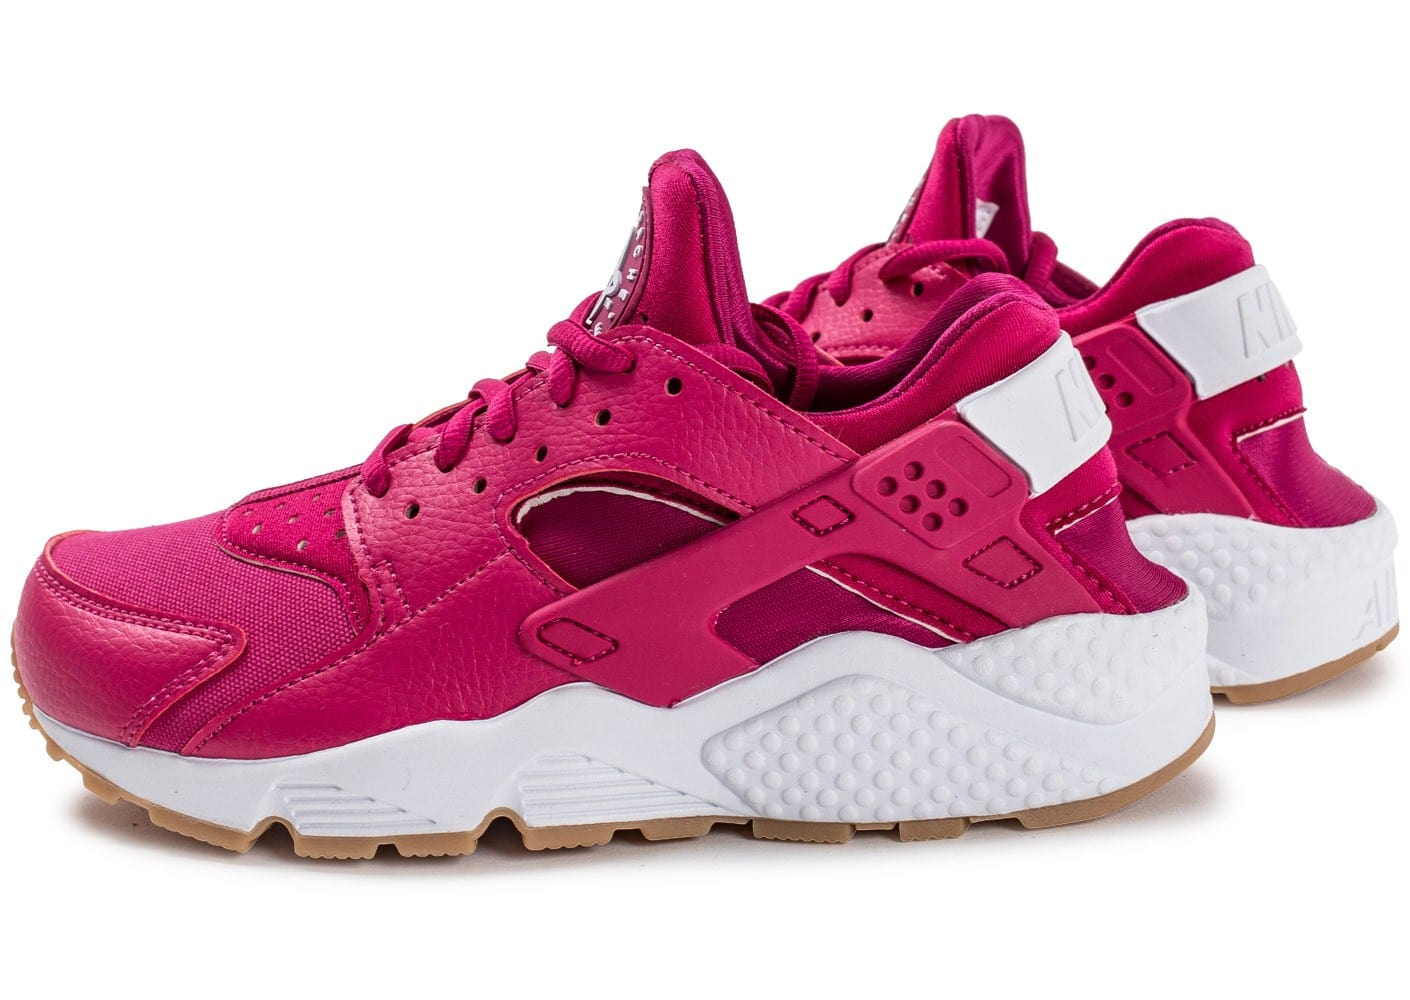 Femme Huarache Aaqxtg0 Rose Air Run Baskets Nike Fuschia Chaussures 7Z7w1